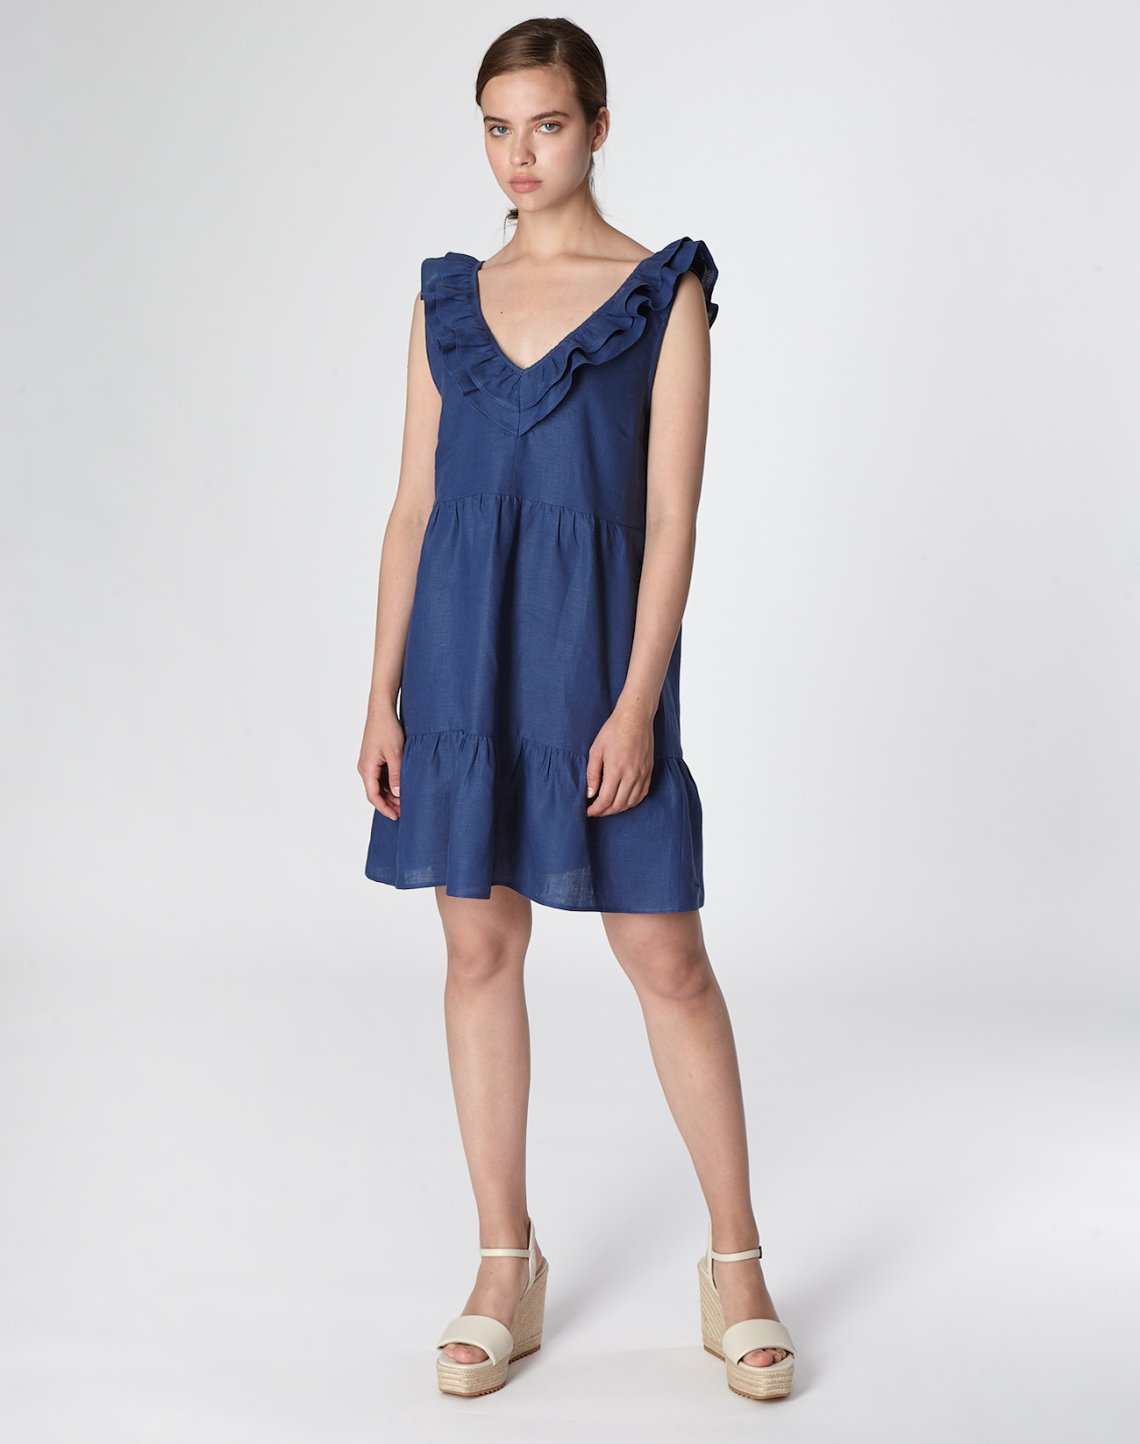 Mini linen dress with ruffles and bow